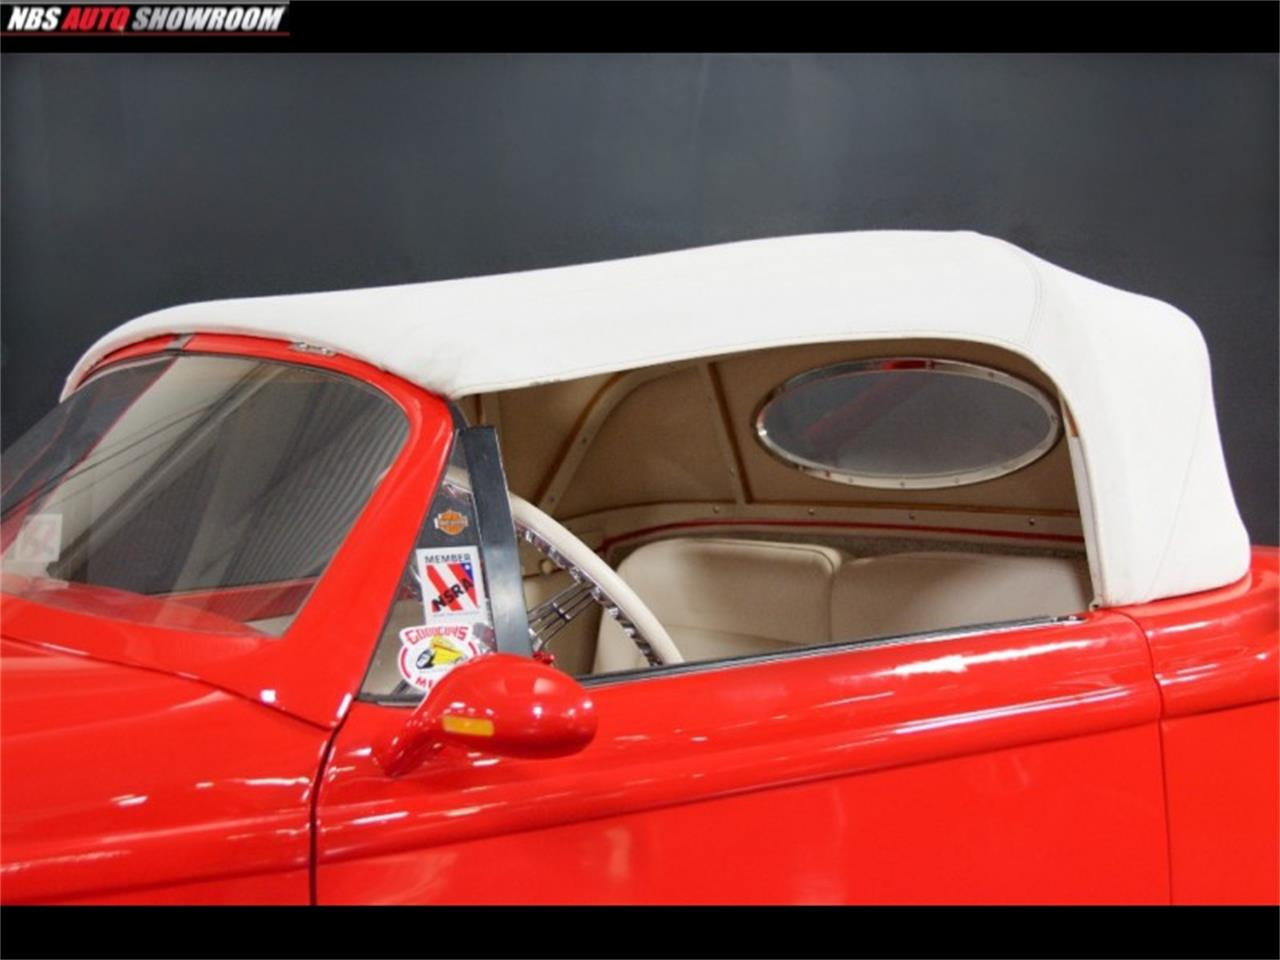 Large Picture of Classic 1932 Roadster located in California Offered by NBS Auto Showroom - QY4R